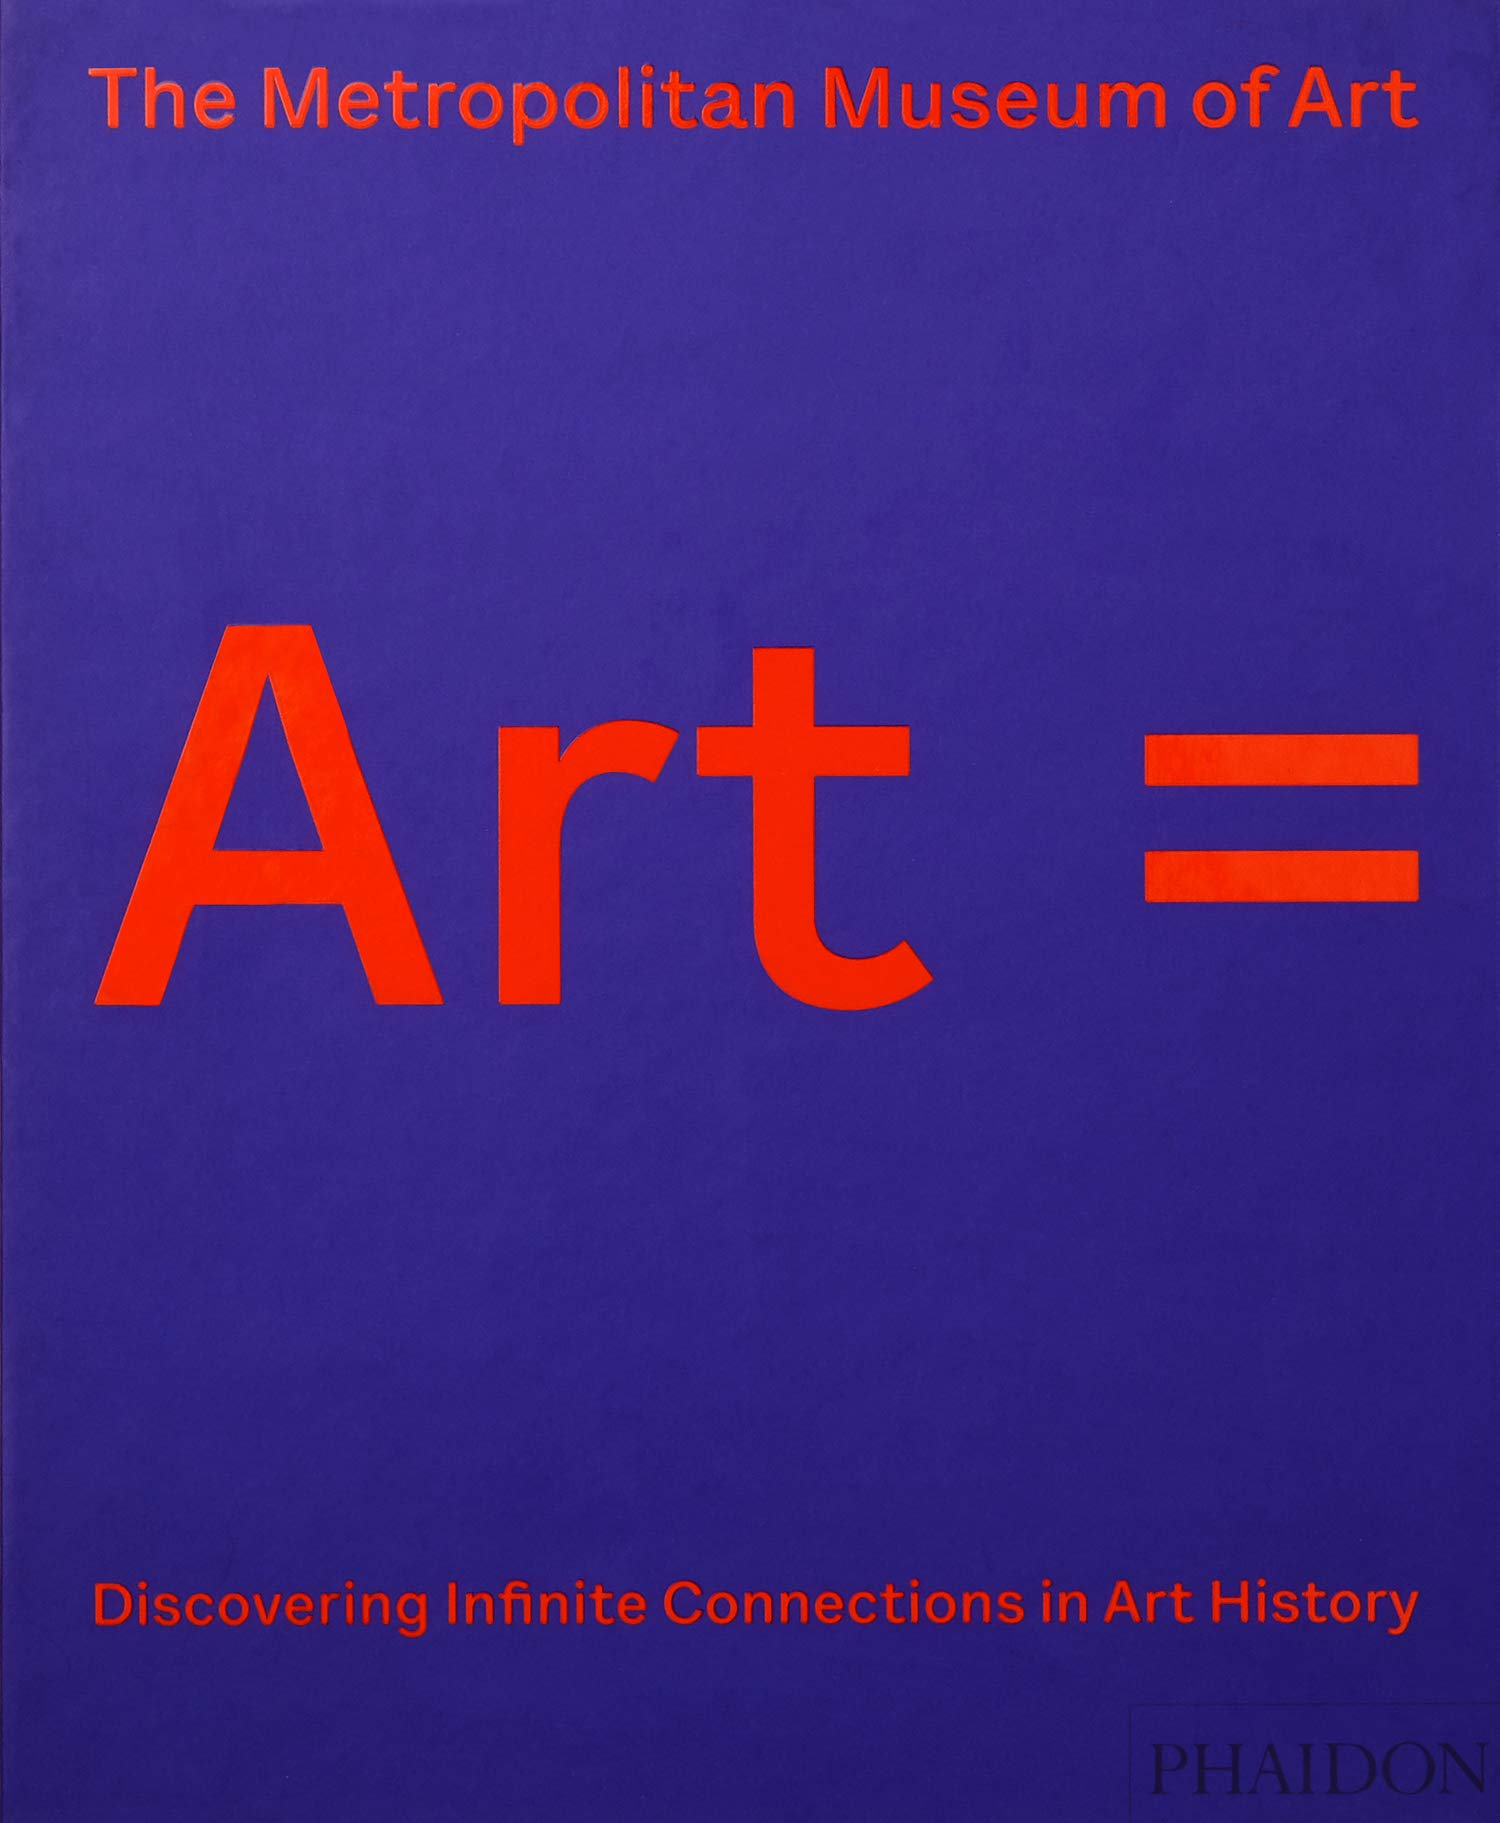 Art = Discovering Infinite Connections in Art History from The Metropolitan Musuem of Art